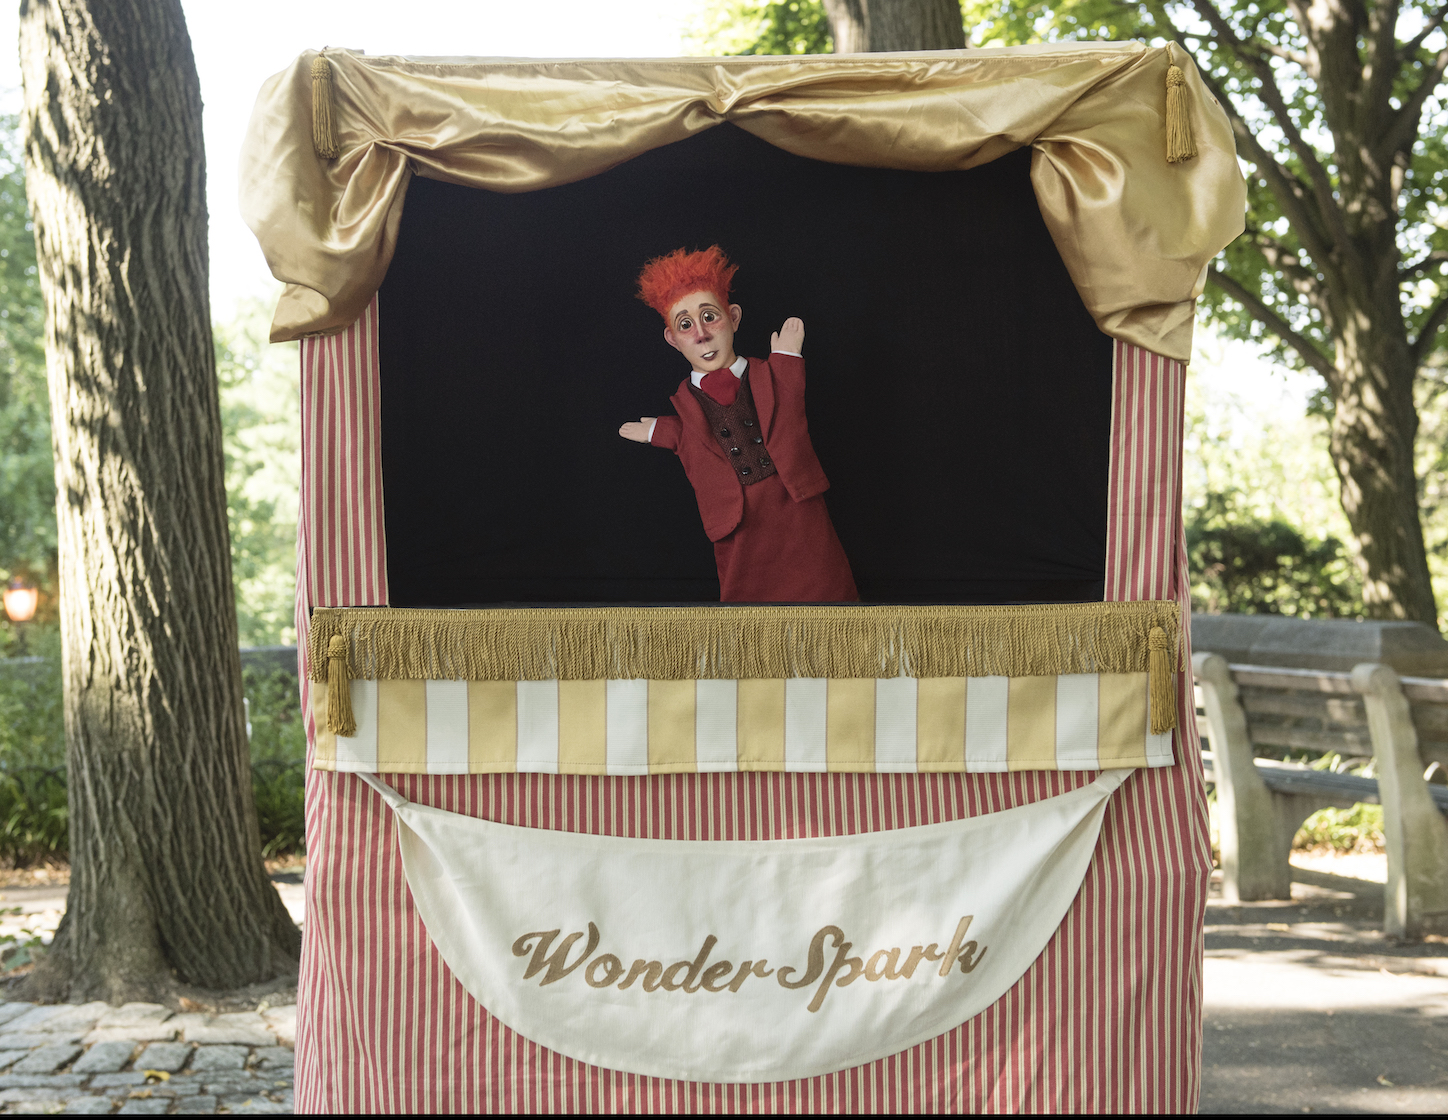 a red-haired puppet in a puppet theatre